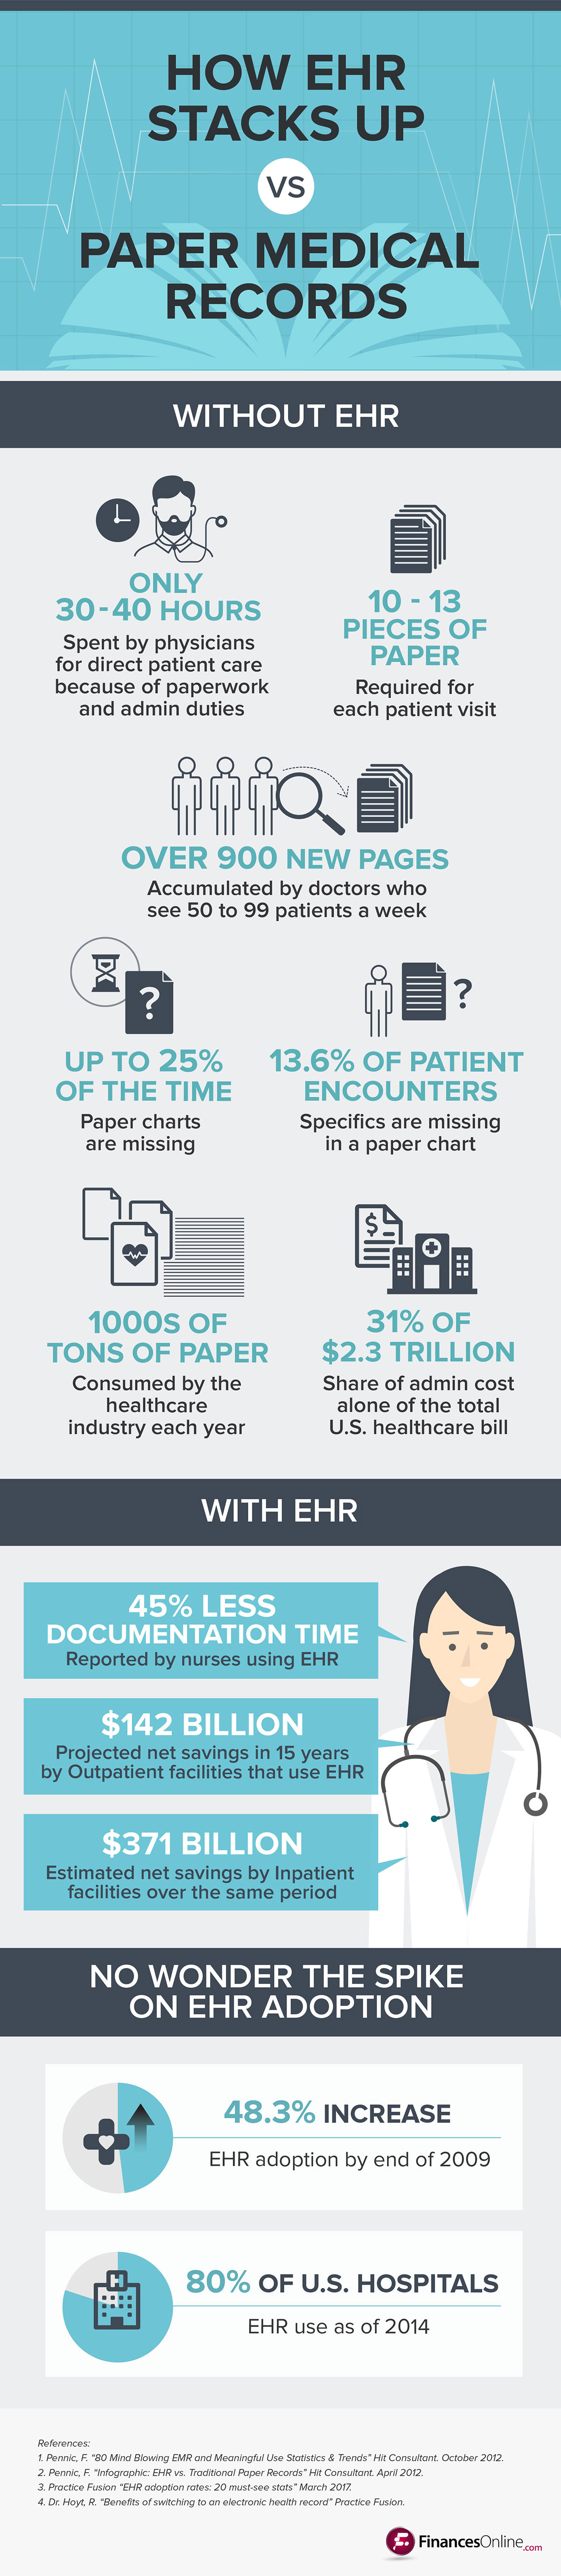 Top 20 Ehr Software Companies For Electronic Health Records